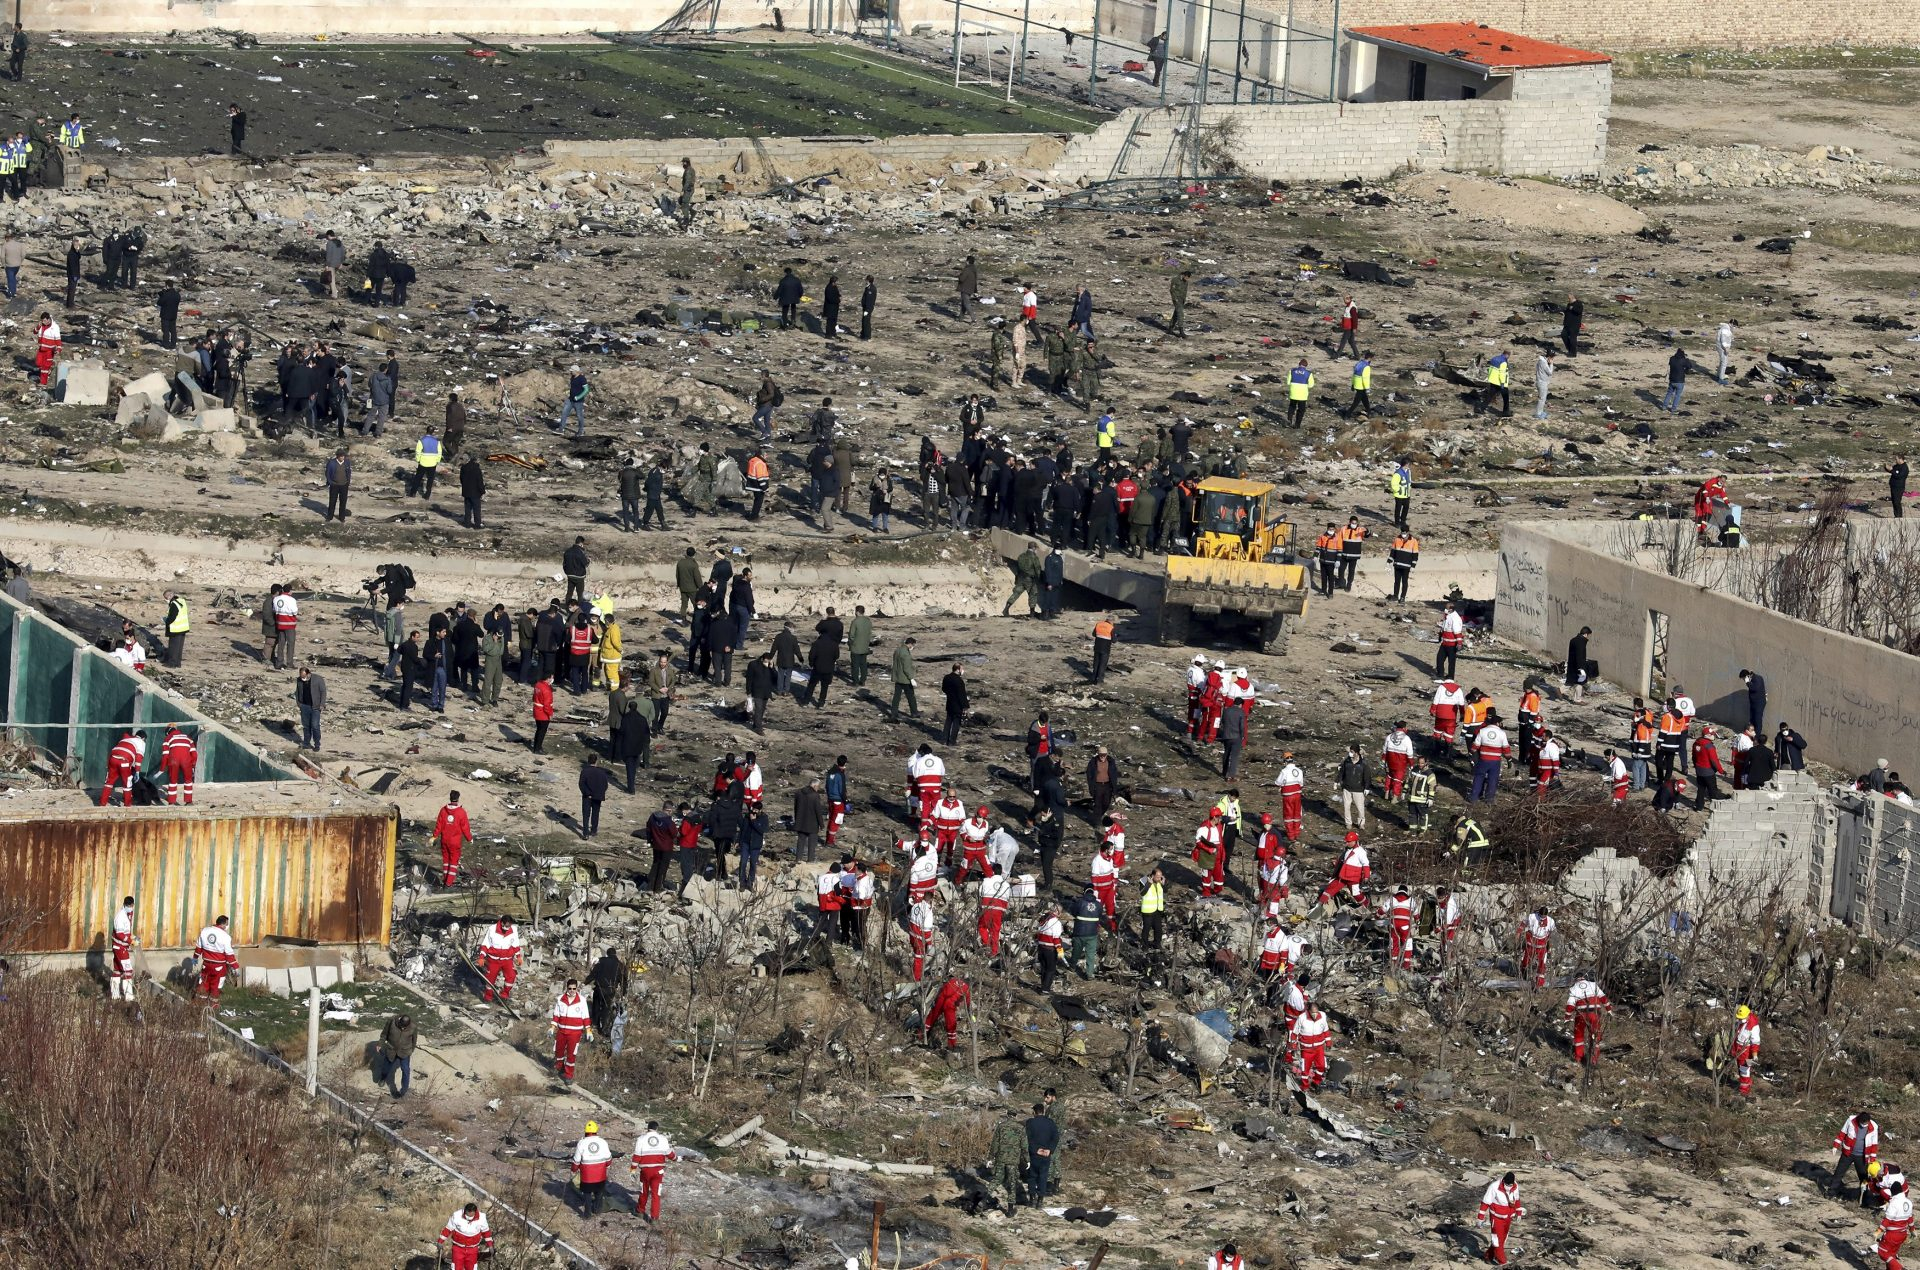 Rescue workers search the scene where an Ukrainian plane crashed in Shahedshahr, southwest of the capital Tehran, Iran, Wednesday, Jan. 8, 2020. A Ukrainian passenger jet carrying 176 people crashed on Wednesday, just minutes after taking off from the Iranian capital's main airport, turning farmland on the outskirts of Tehran into fields of flaming debris and killing all on board.